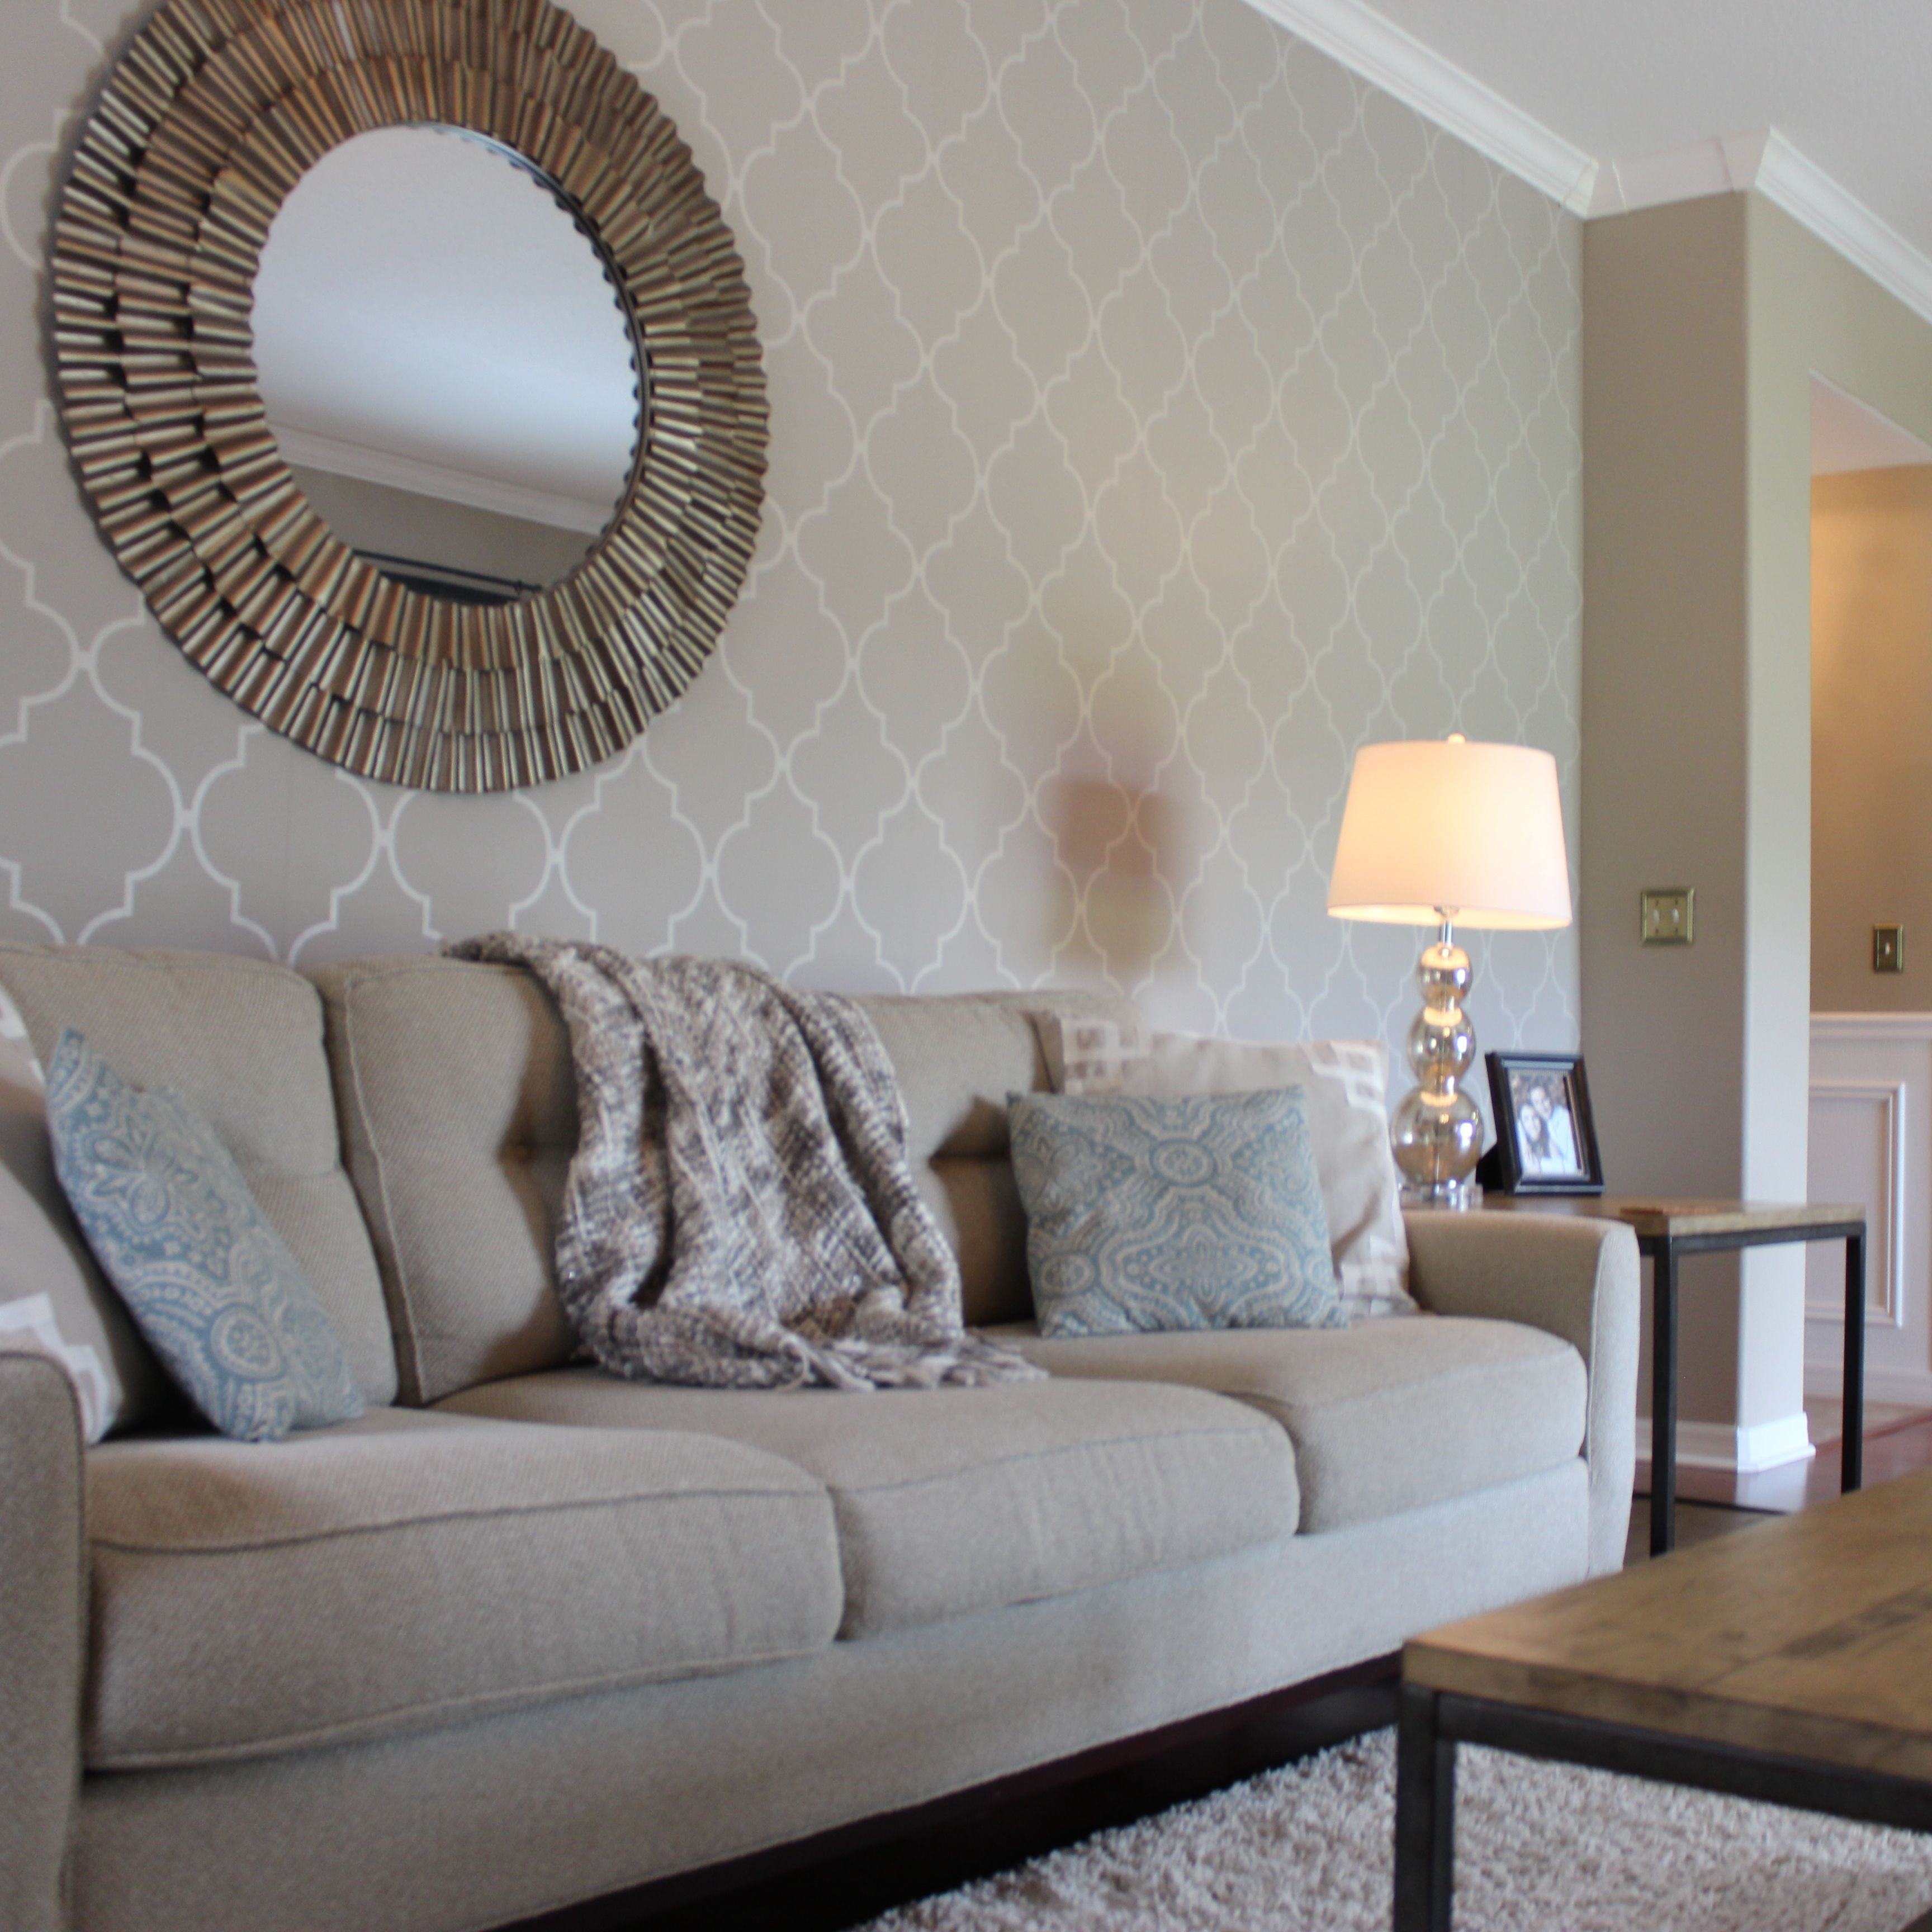 Accent Wall Ideas An Accent Wall Could Be A Wonderful